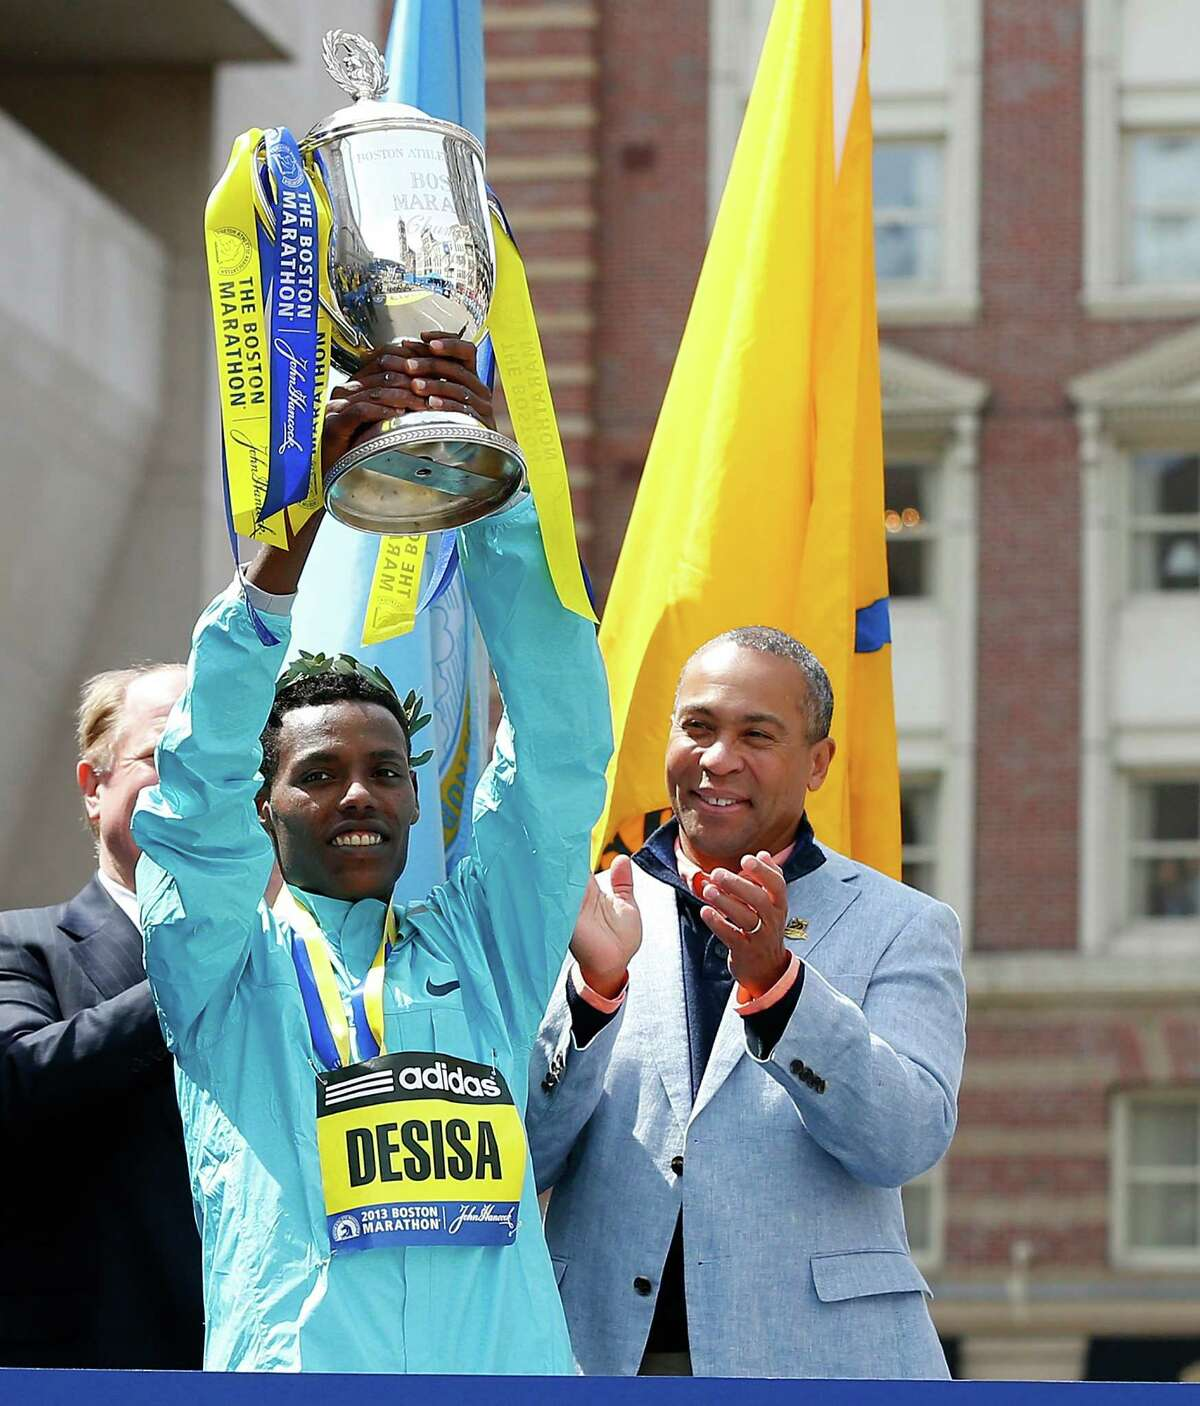 BOSTON, MA - APRIL 15: Lelisa Desisa Benti (L) of Ethiopia holds the trophy after winning the men?s division of the 117th Boston Marathon as Duval Patrick, governor of Massachusetts watches on April 15, 2013 in Boston, Massachusetts.